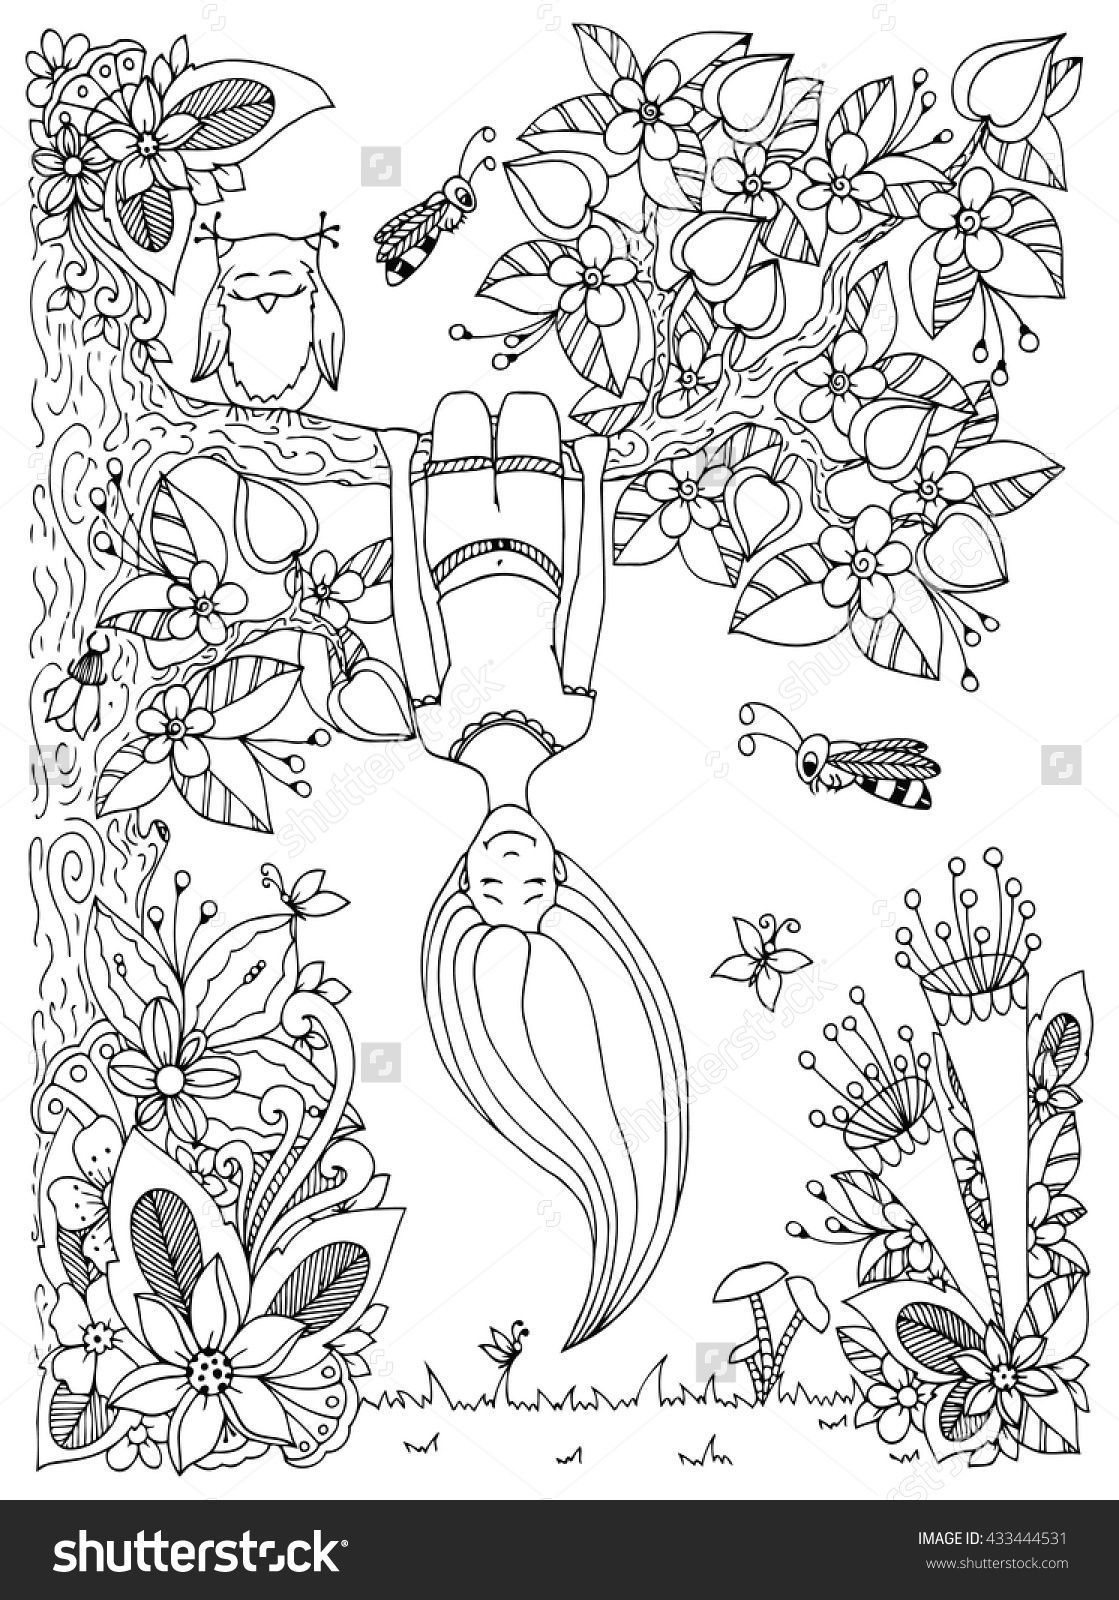 Zen Tangle Girl Hangs On A Tree Upside Down Doodle Floral